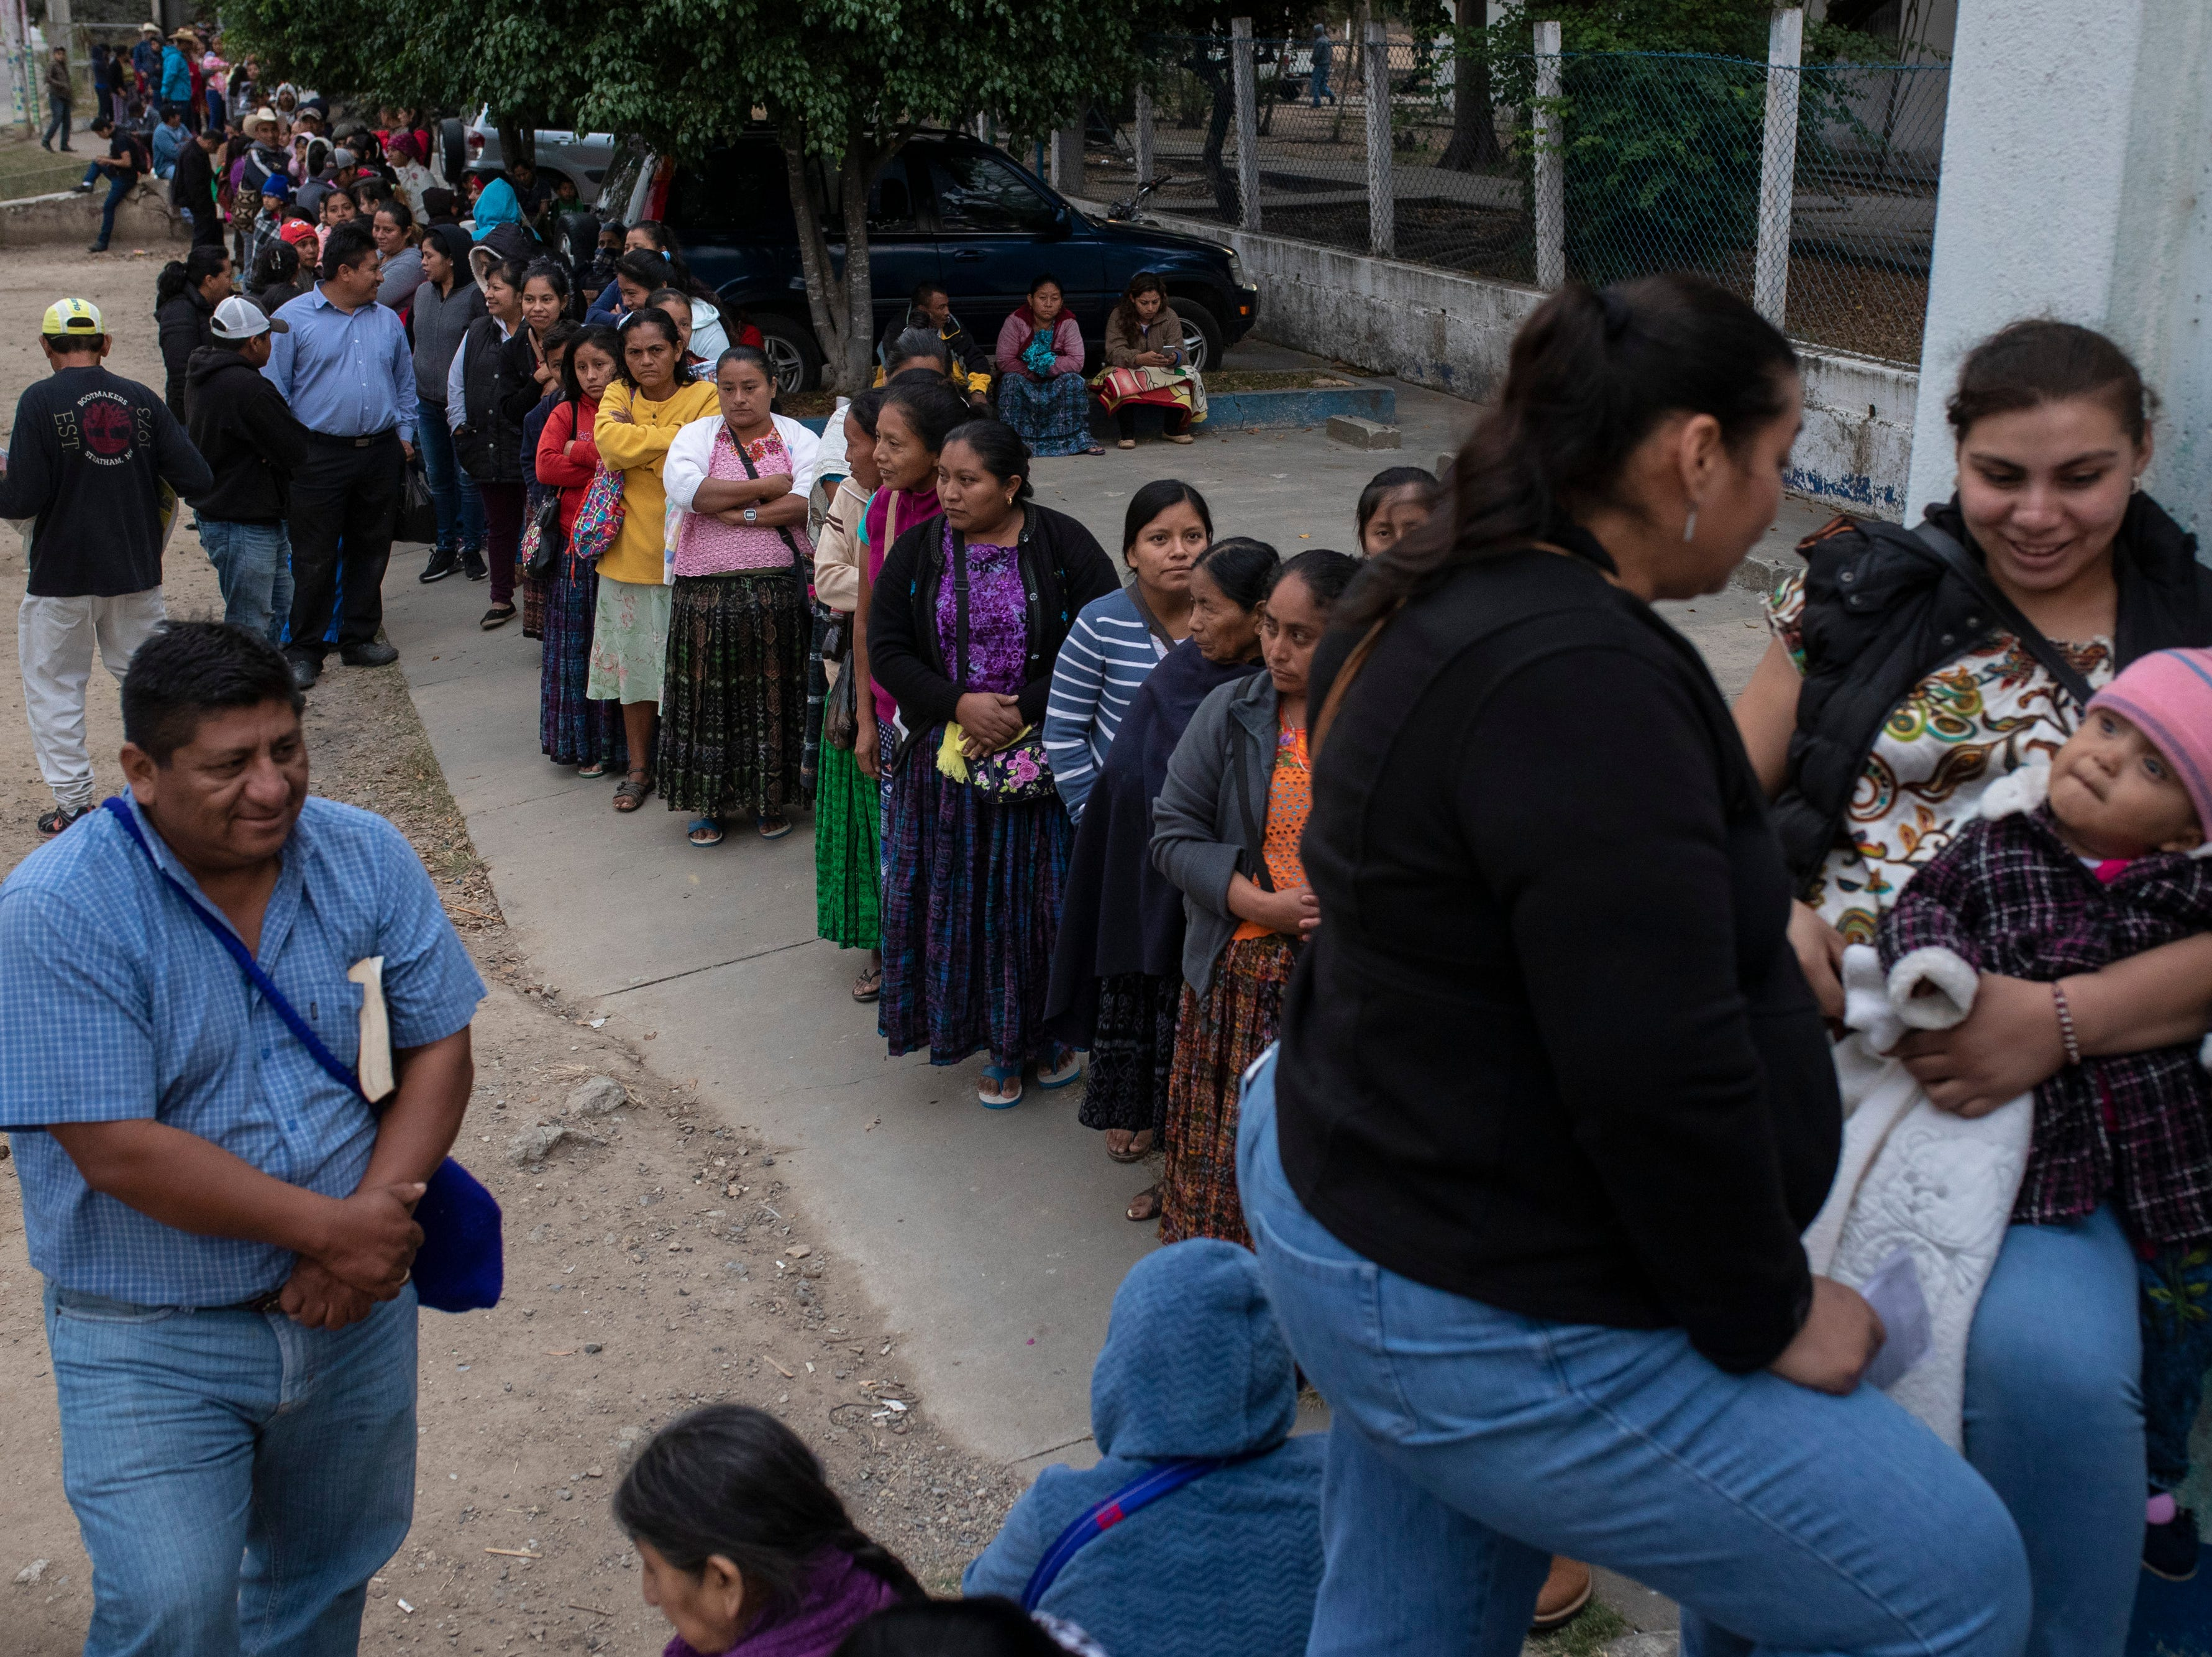 Over a thousand people wait in line to be seen by the Children of the Americas medical mission group at the Hospital Nacional de Salamá. Many traveled a full-day and multiple days to attend the clinic. Jan 20, 2019